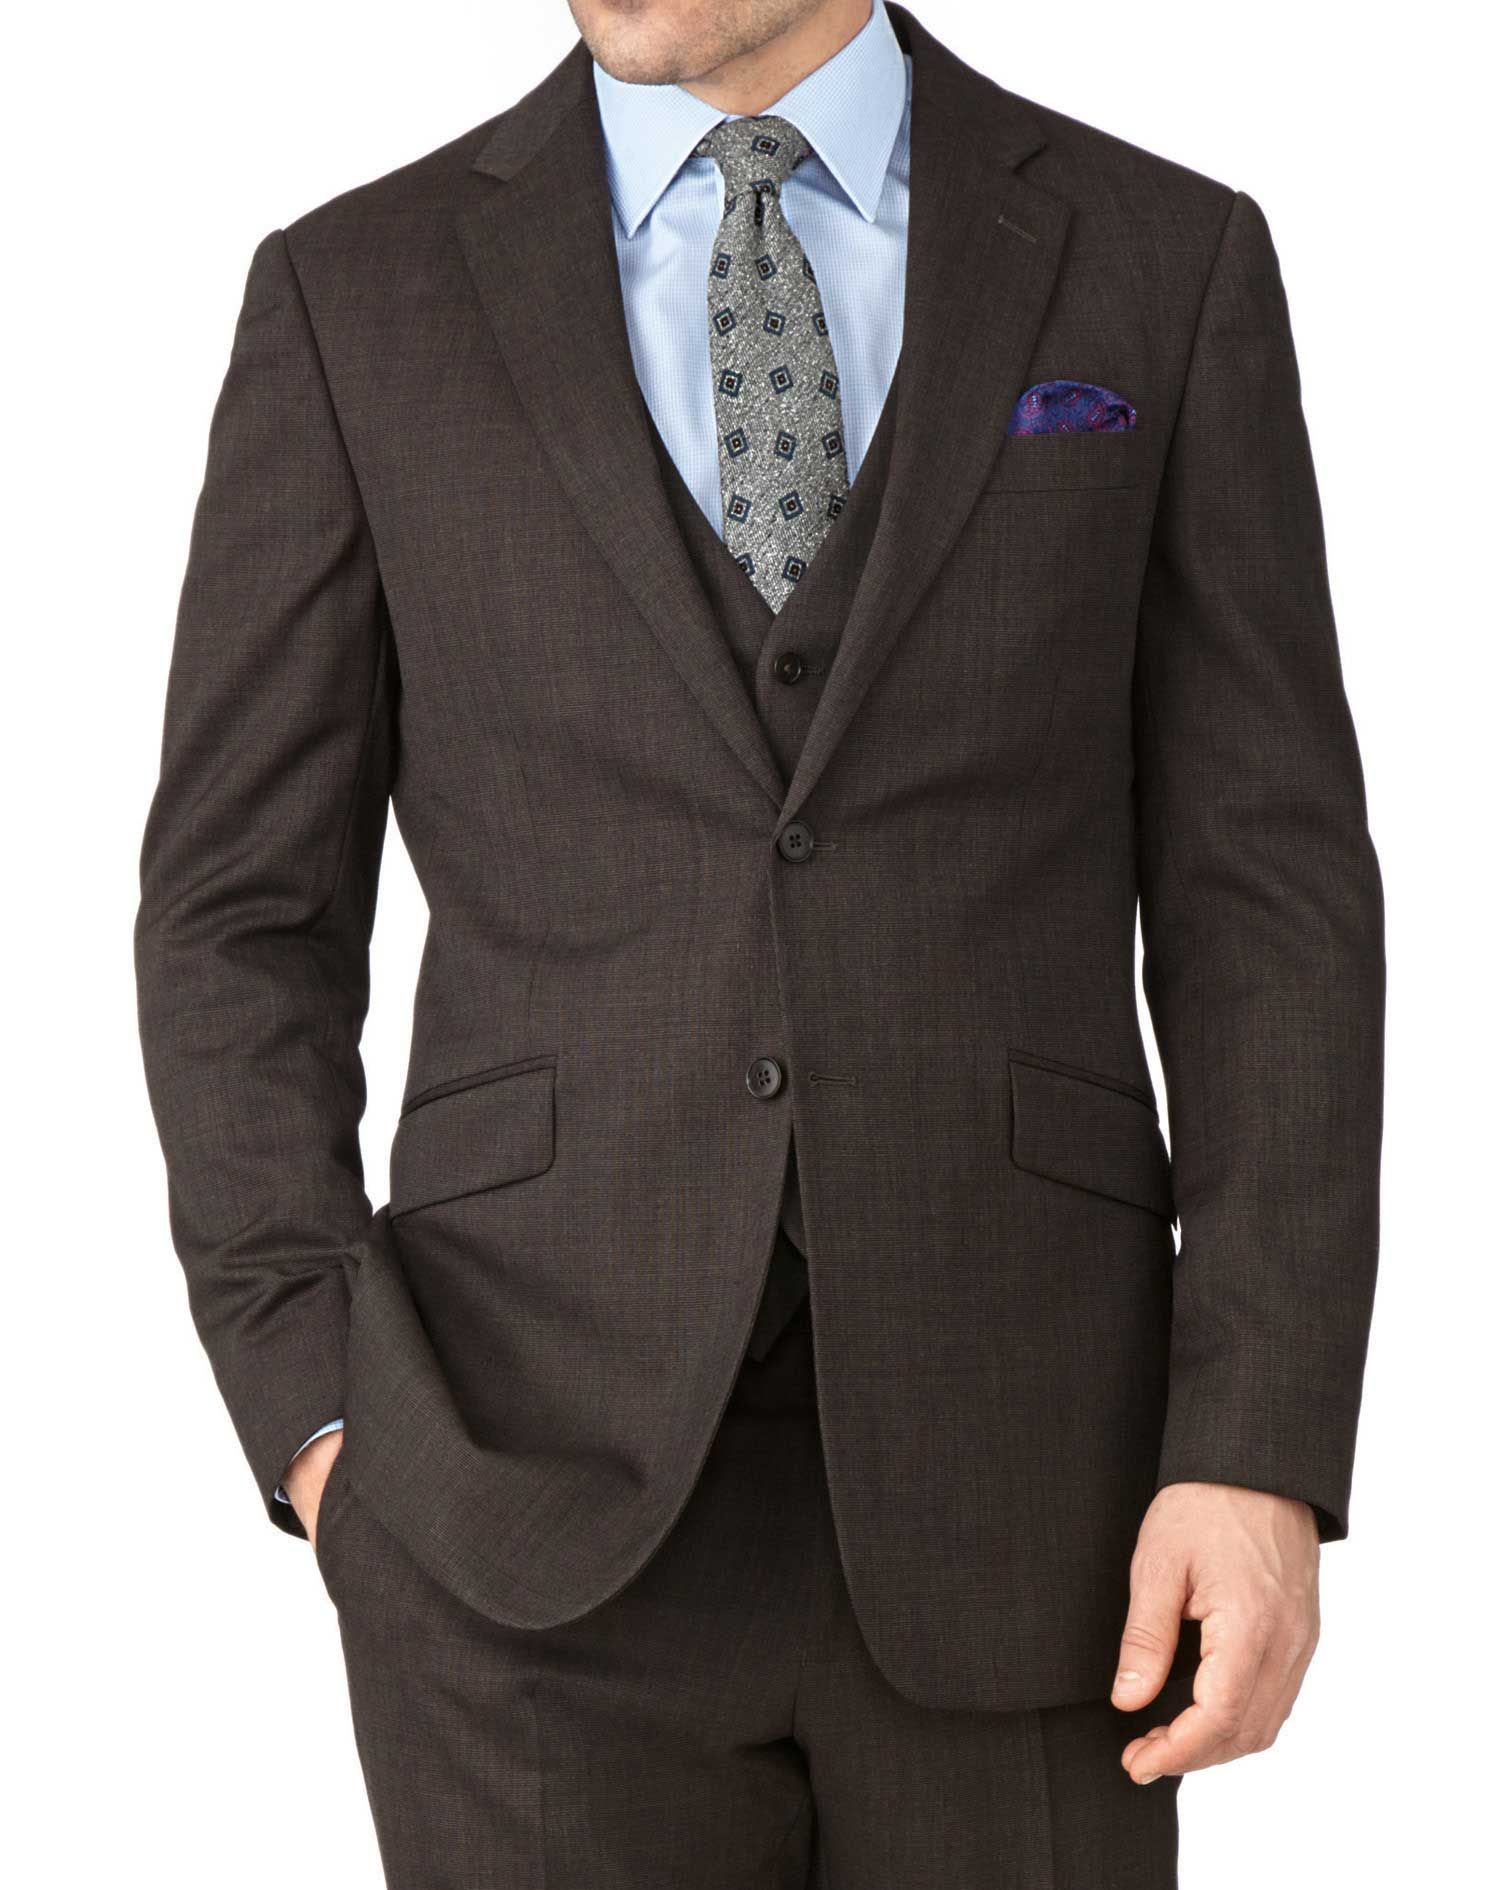 Brown Slim Fit End-On-End Business Suit Wool Jacket Size 38 Short by Charles Tyrwhitt